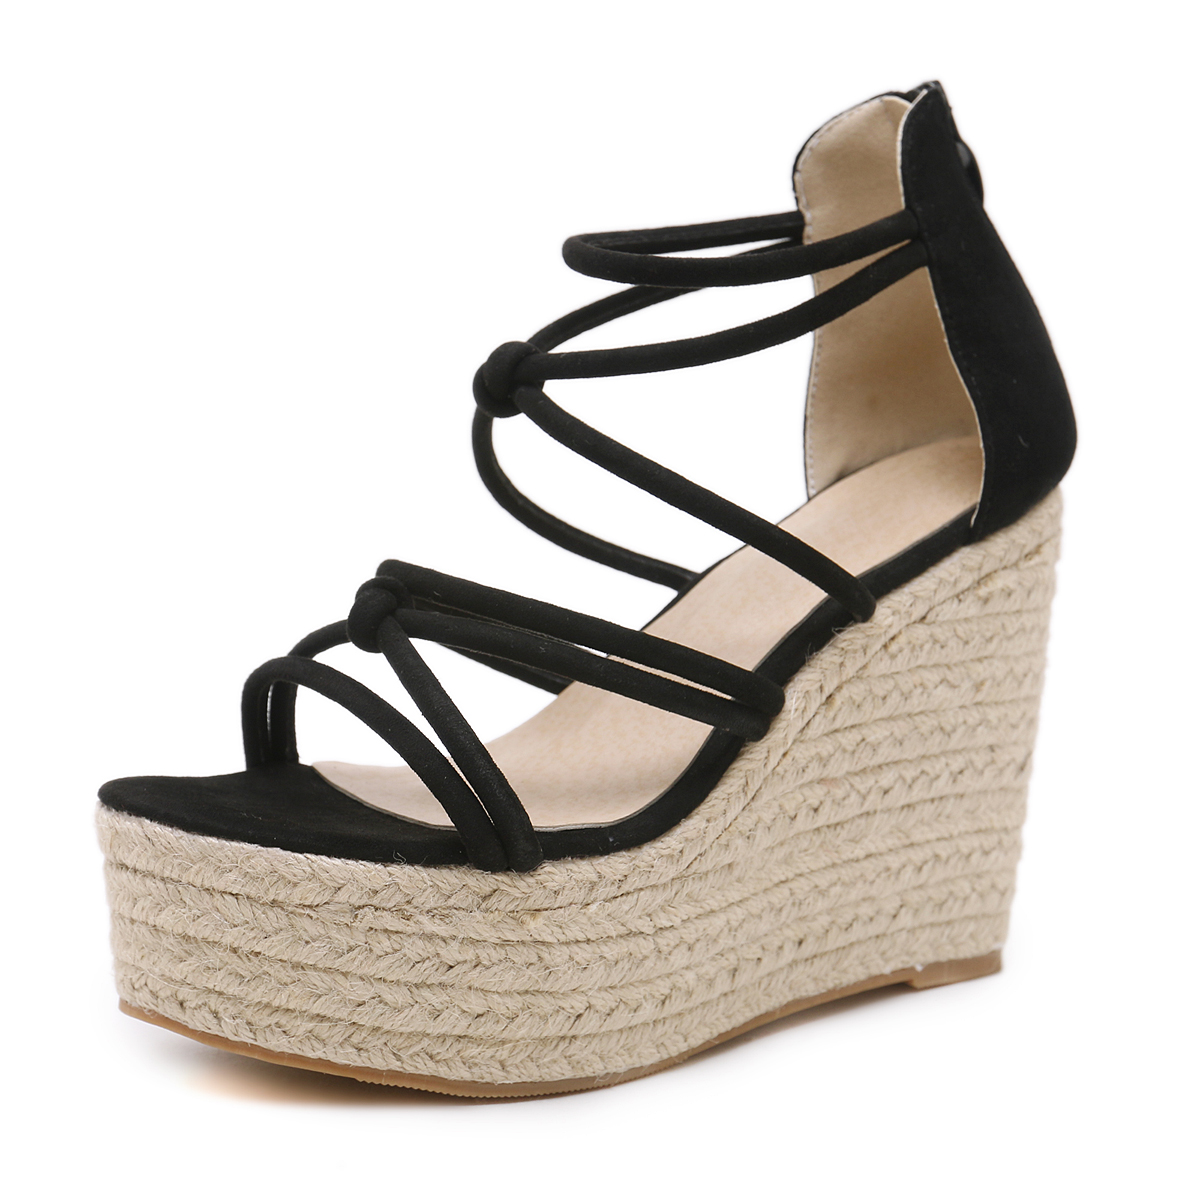 Wedge sandal for Pretty girls